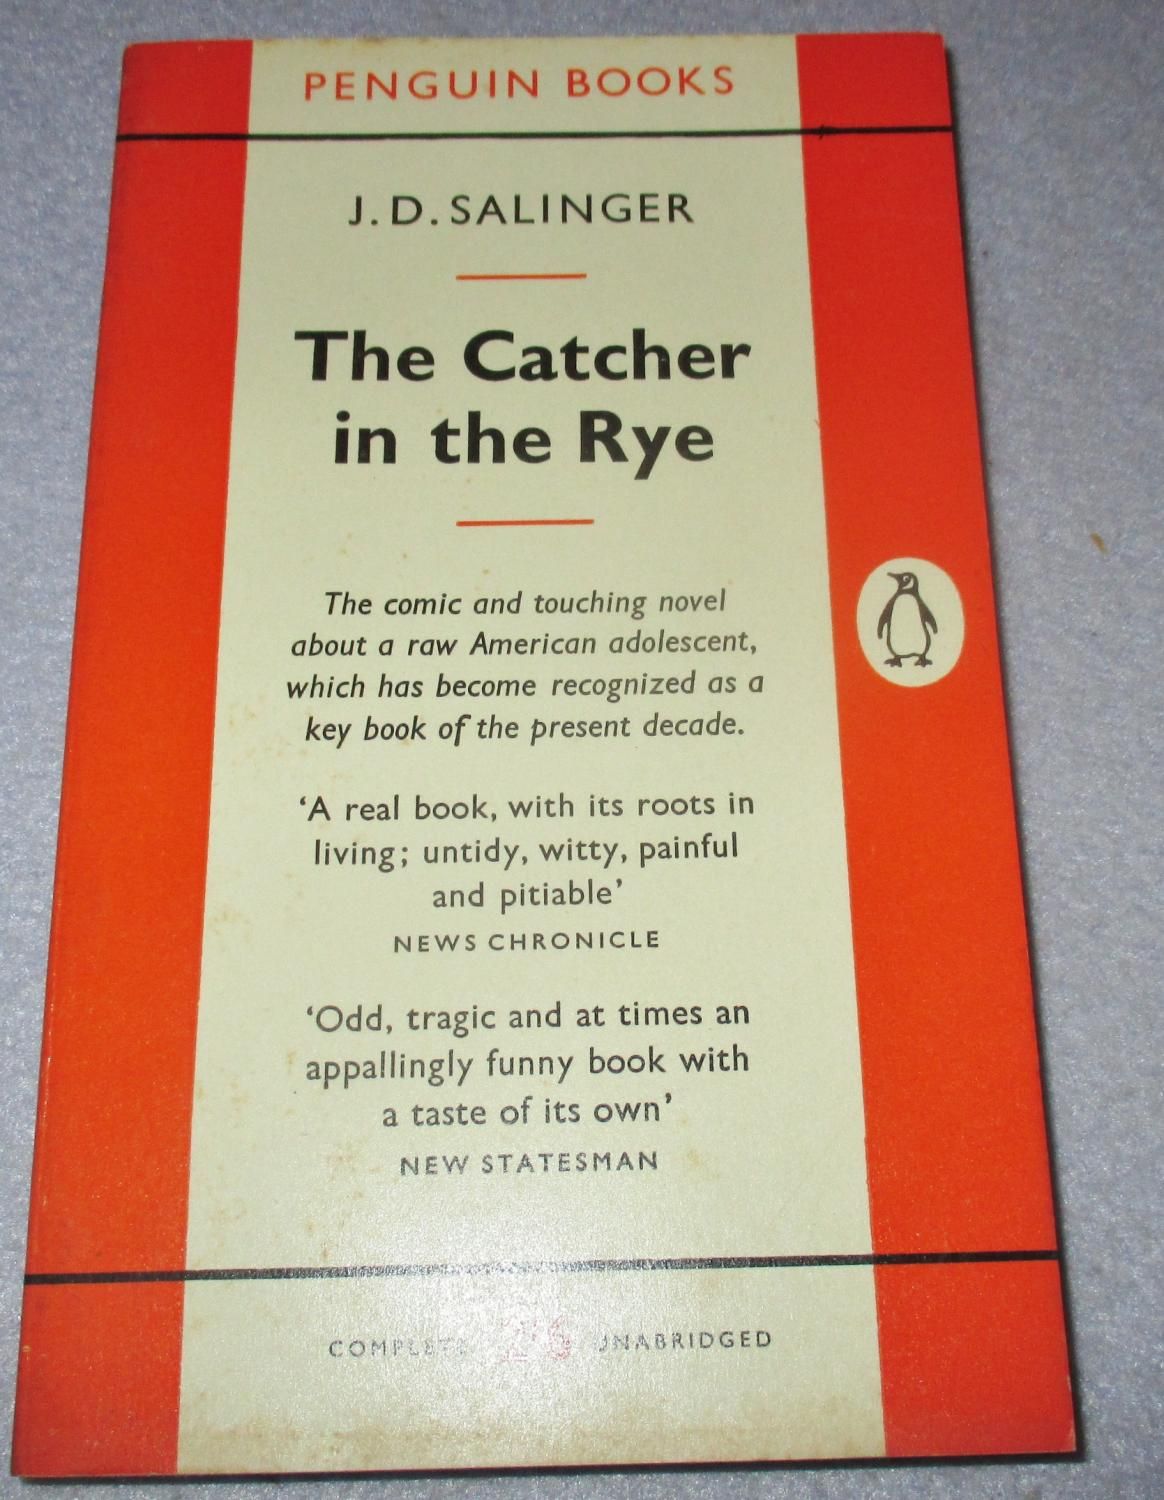 an analysis of the plot and setting of jd salingers the catcher in the rye Catcher in the rye settings are meaningful to the story learners will enjoy the design of this graphic organizer as they describe the location physically and emotionally novel: the catcher in the rye by j.